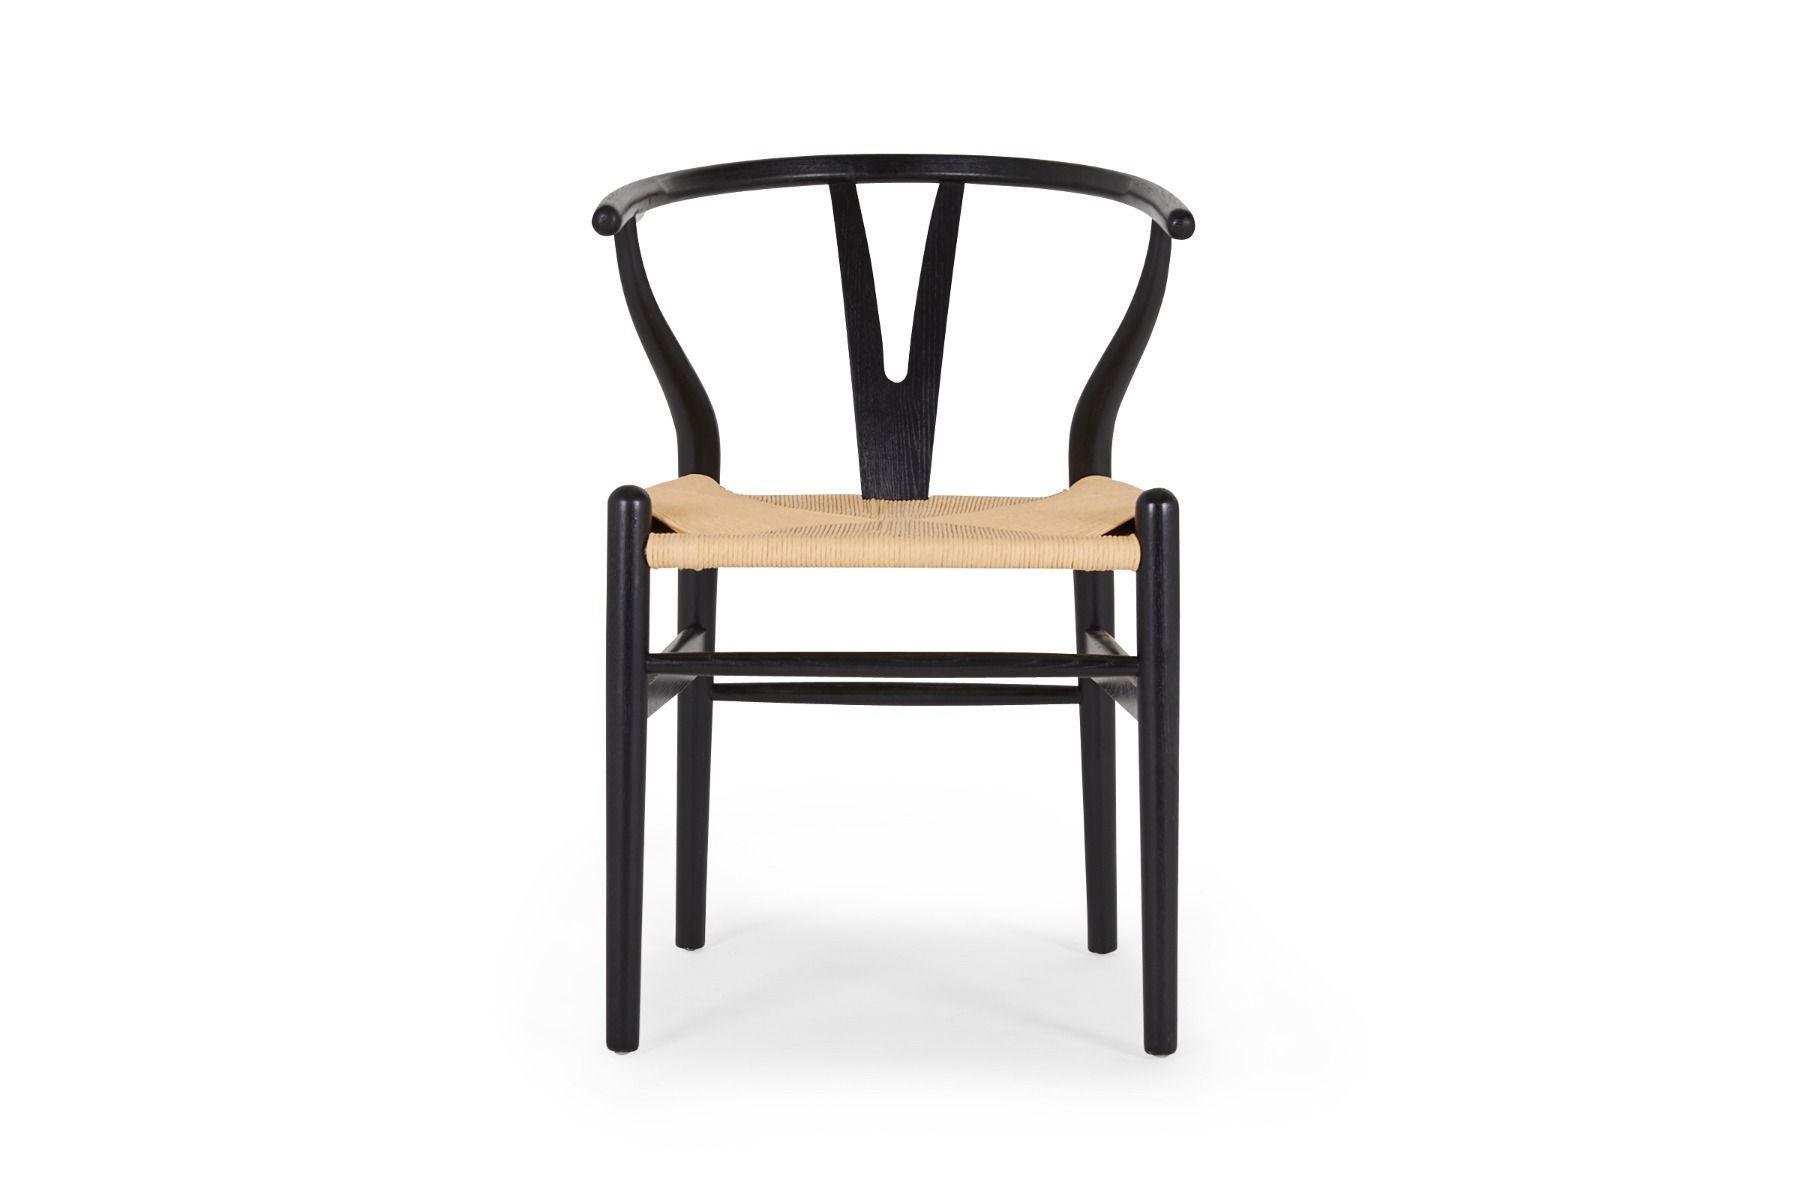 Tremendous Ark Black Ash Dining Chair Lounge Lovers Chaises In 2019 Inzonedesignstudio Interior Chair Design Inzonedesignstudiocom